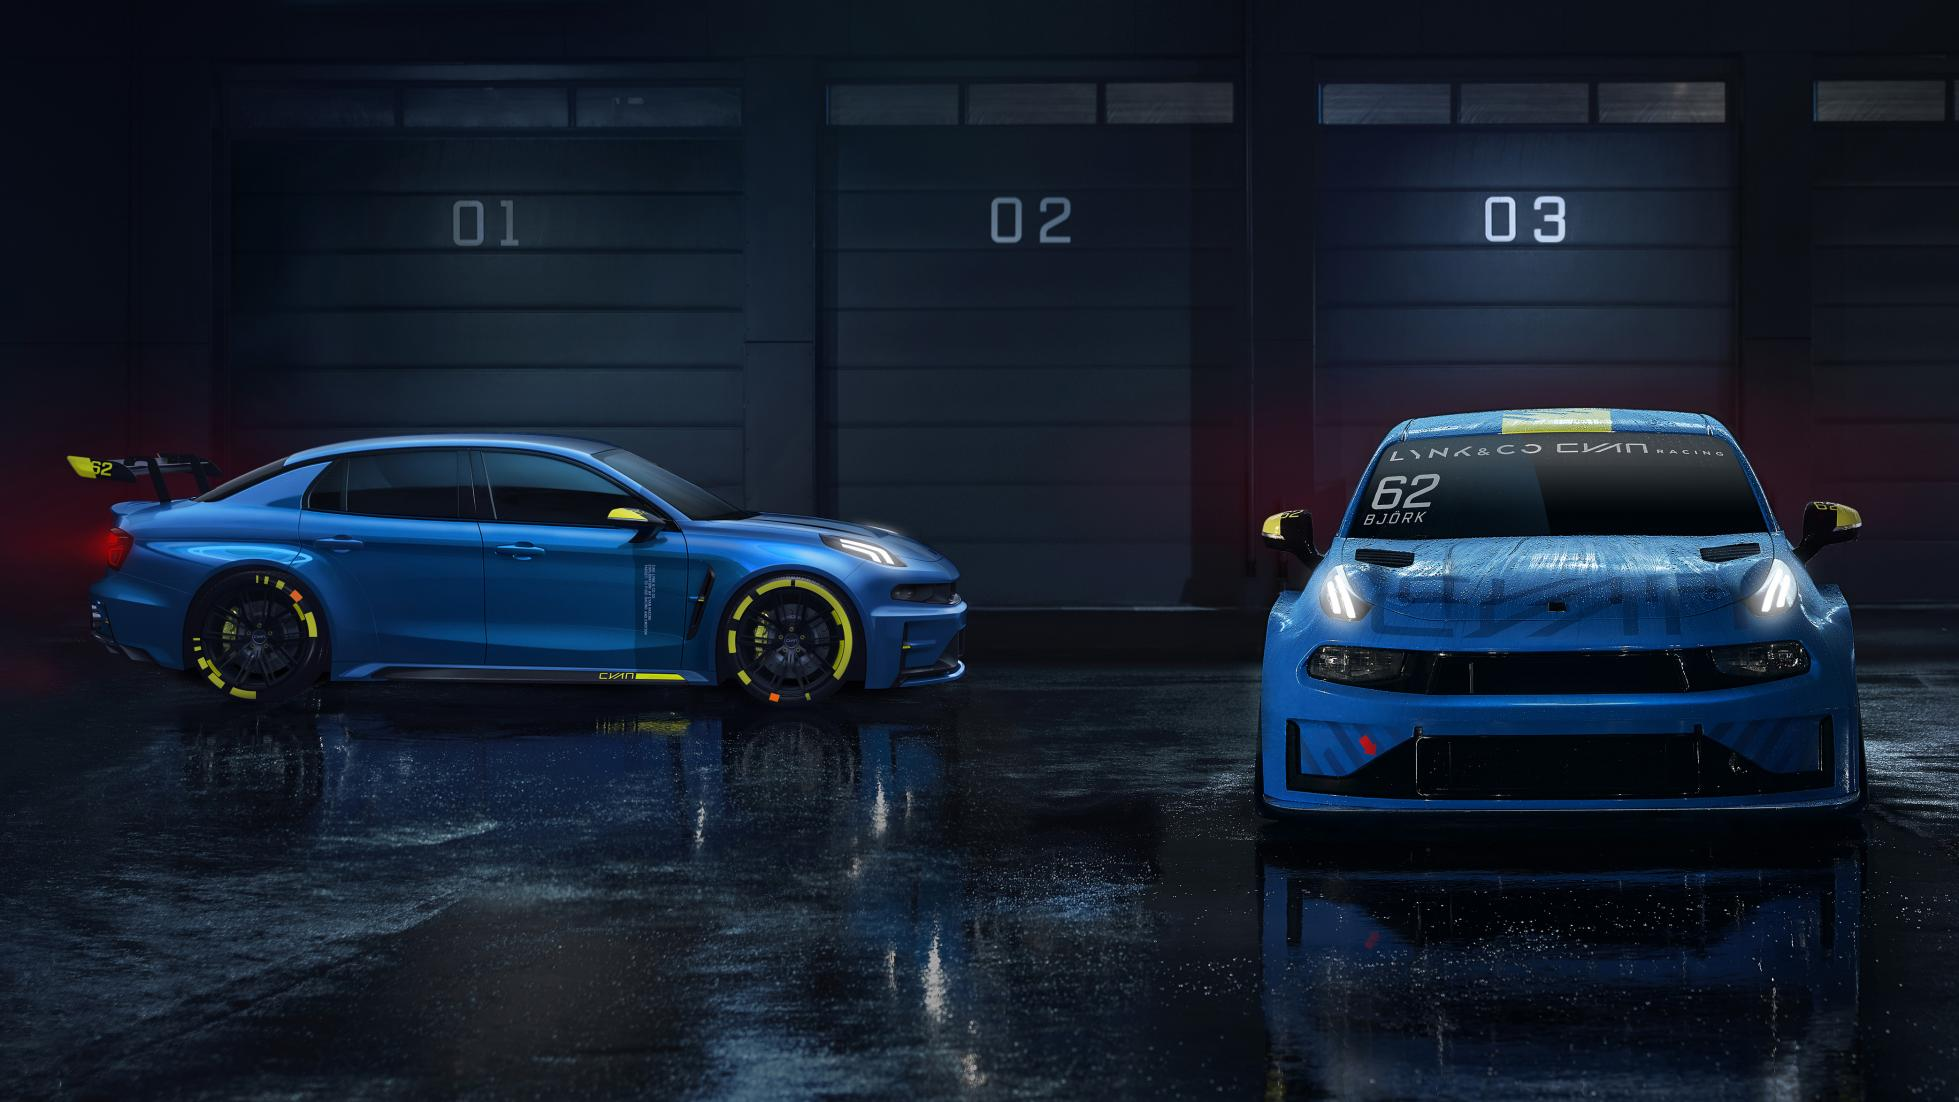 Lynk & Co will Enter FIA World Touring Series with this 500hp TCR Race Car 1